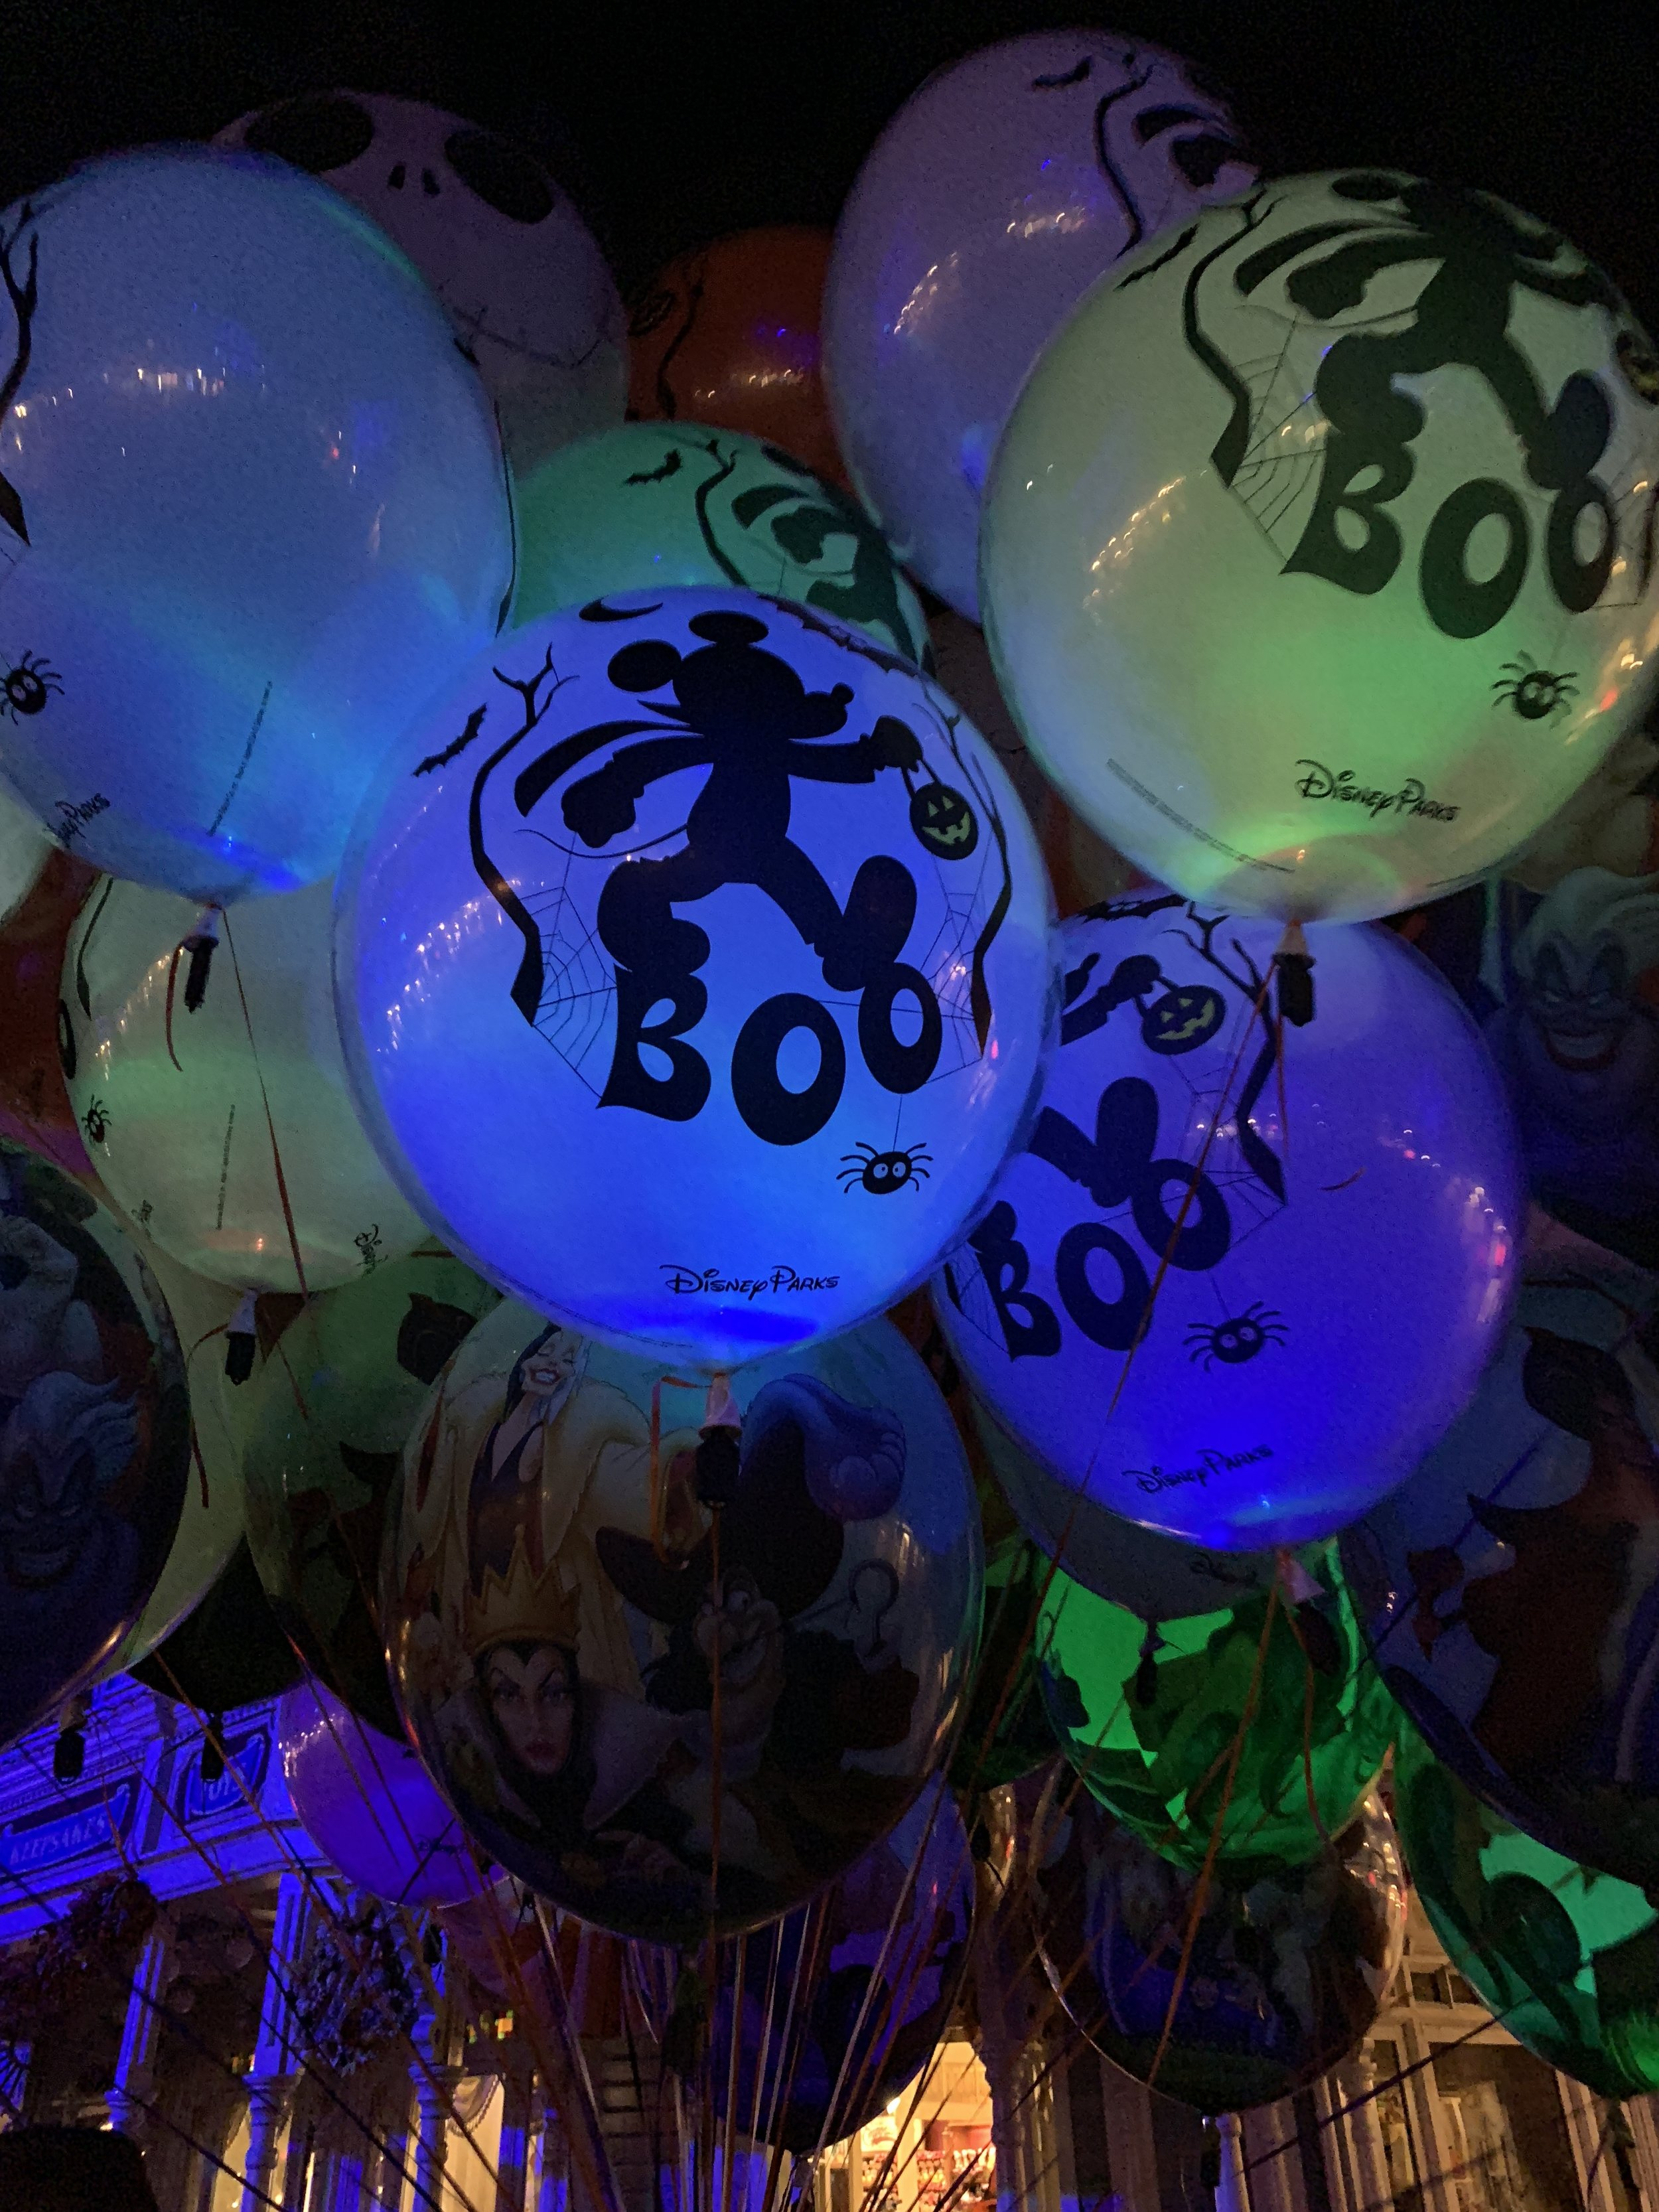 Color changing glowing balloons.